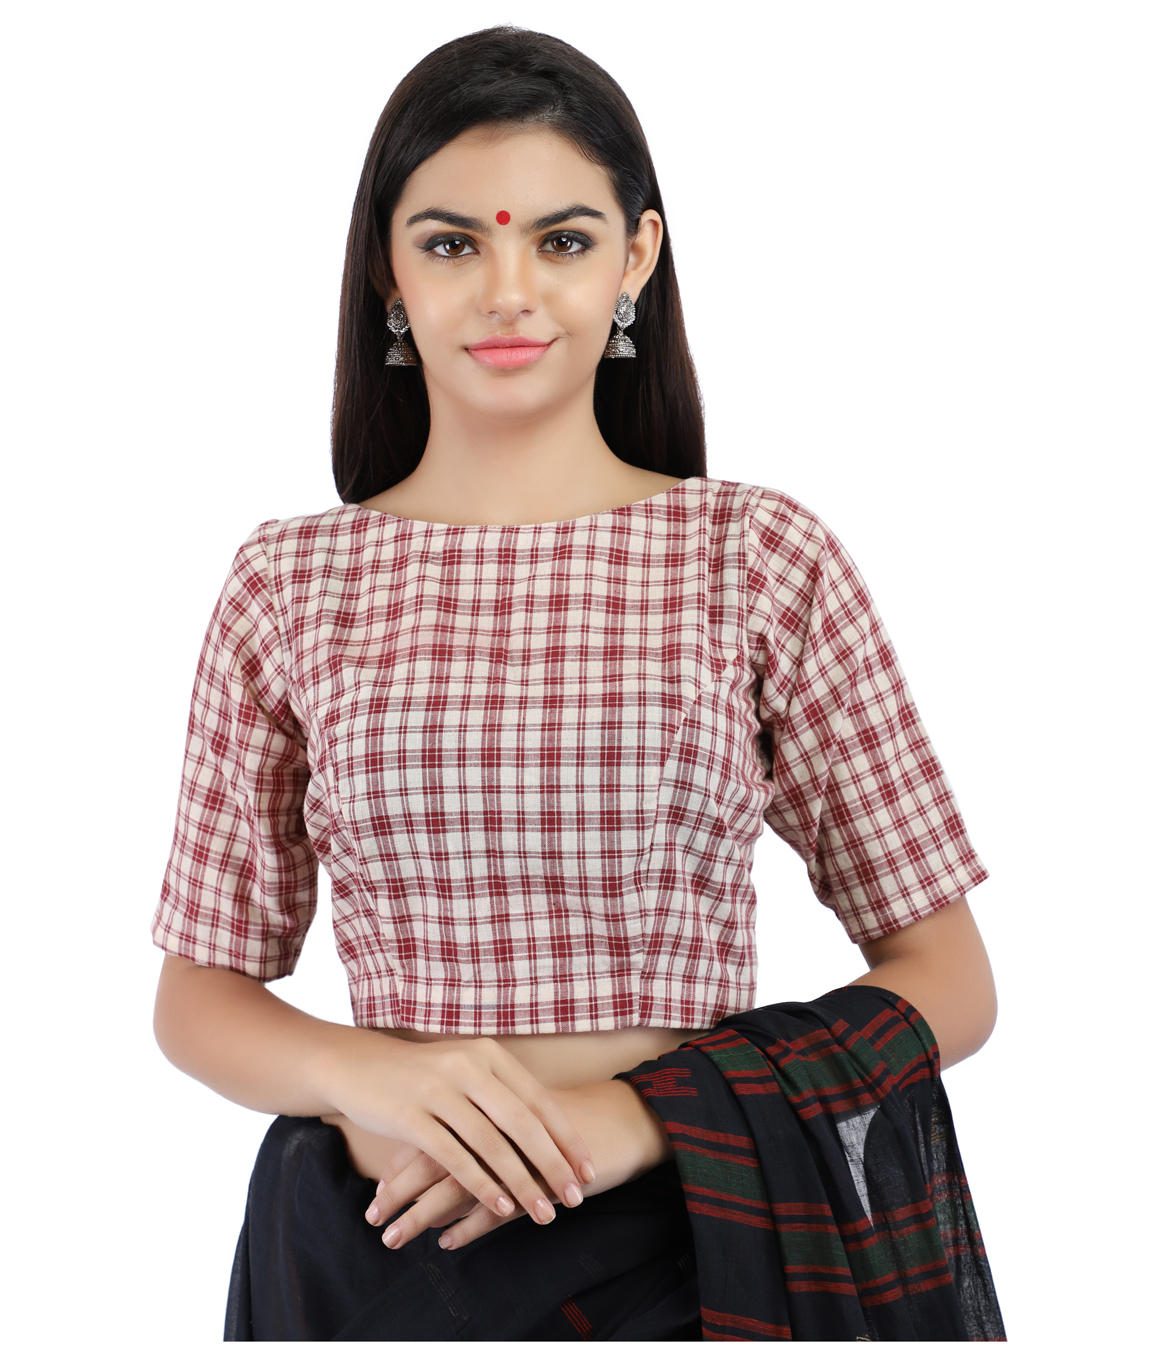 Handloom Red and White Pure Cotton Checks Boat Neck Blouse With Back Keyhole (COLOUR : RED & WHITE CHECKS)